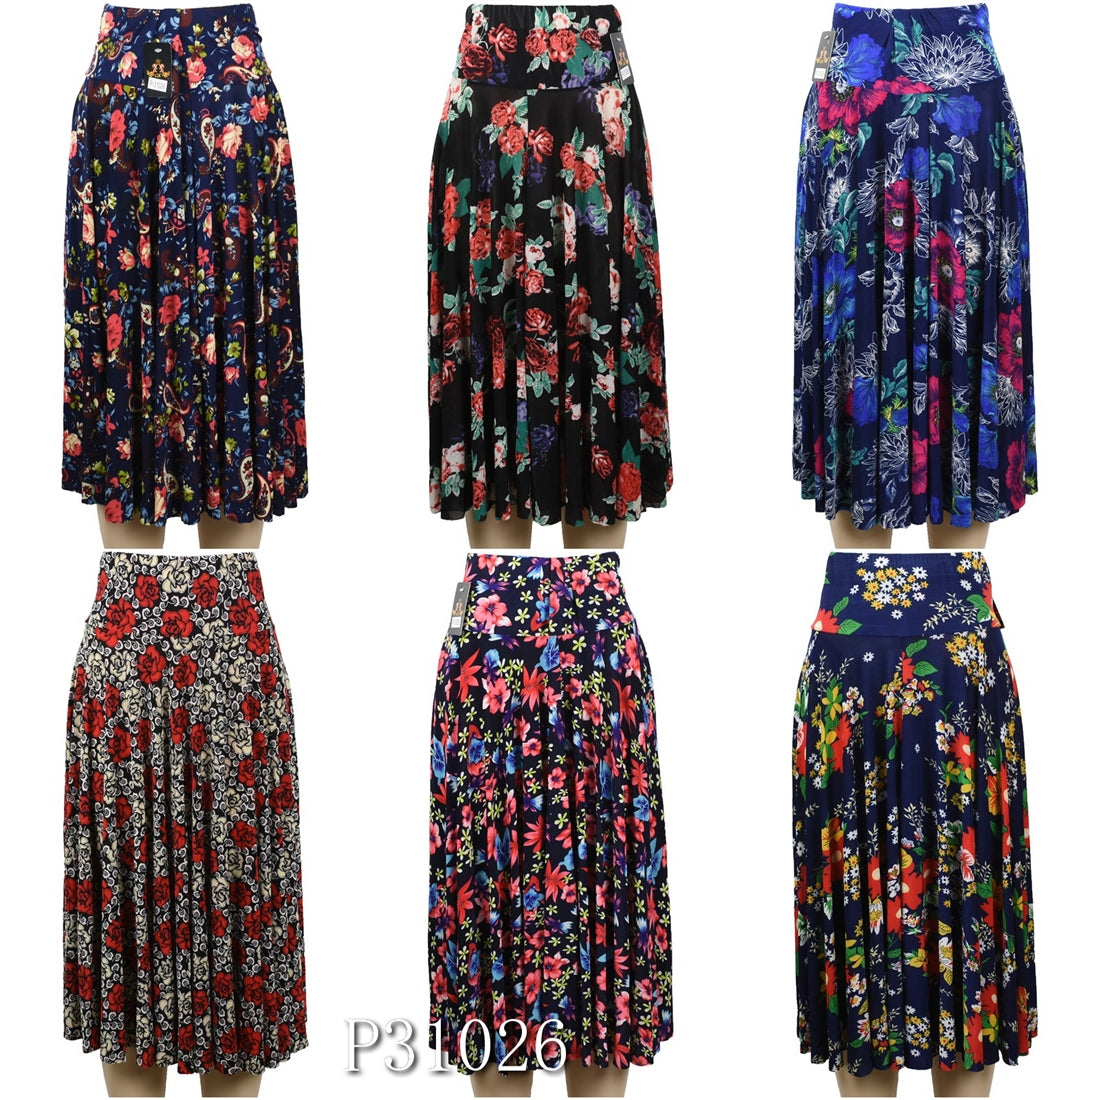 697ec4c00e3 Wholesale Fashion Flower Print Long Maxi Skirts – OPT FASHION WHOLESALE